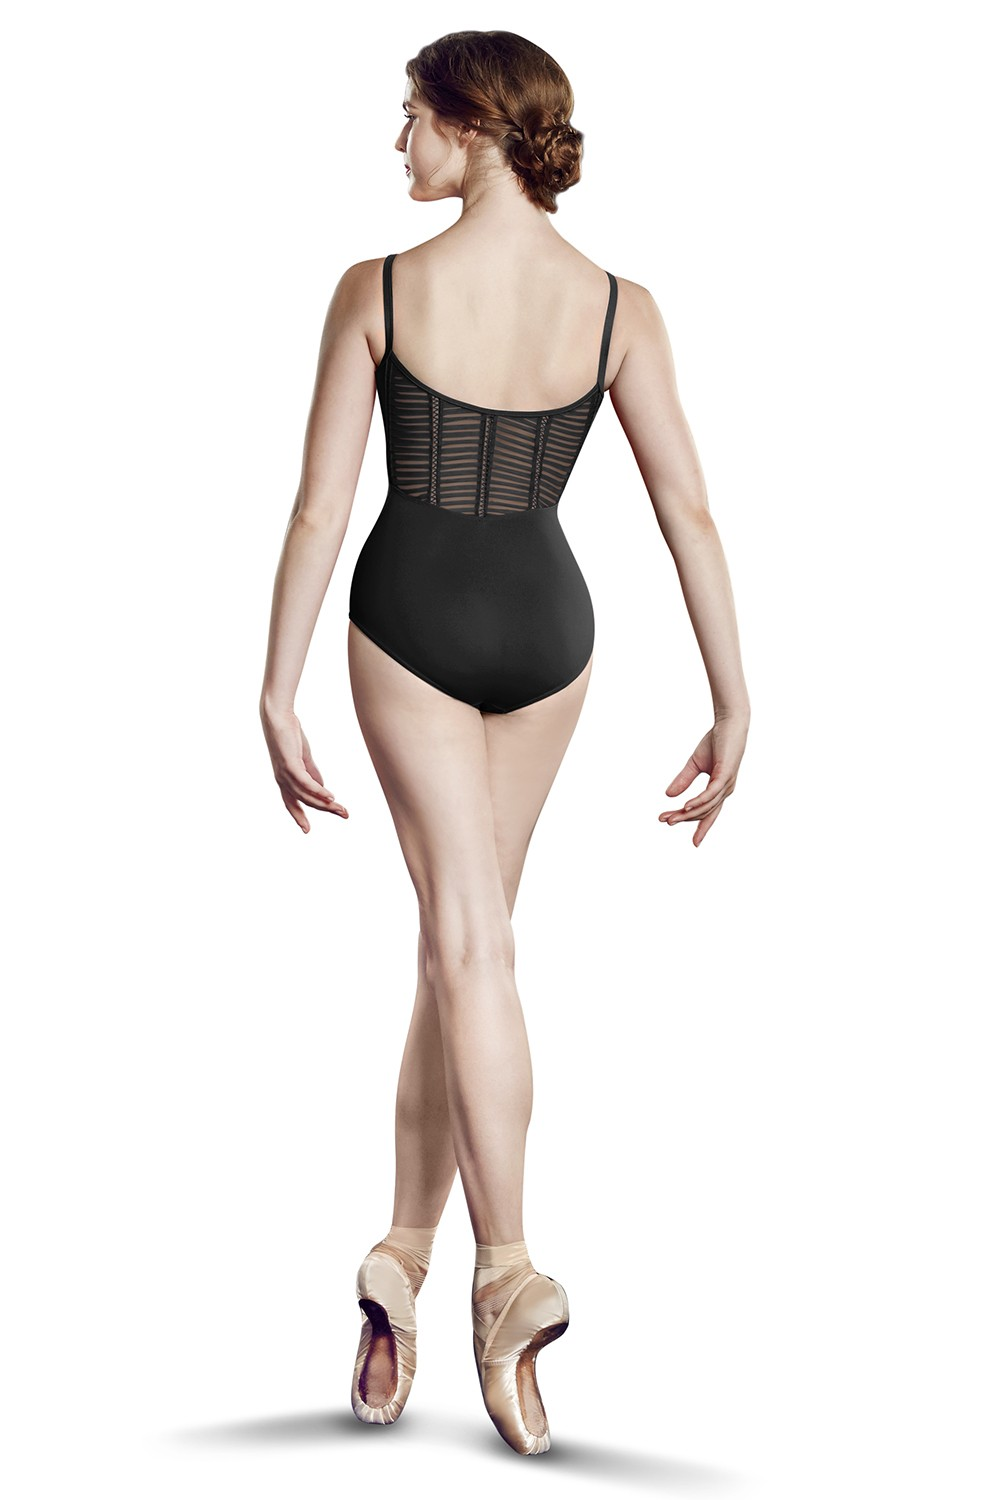 Body A Spalline Sottili Con Elastici A Z Women's Dance Leotards